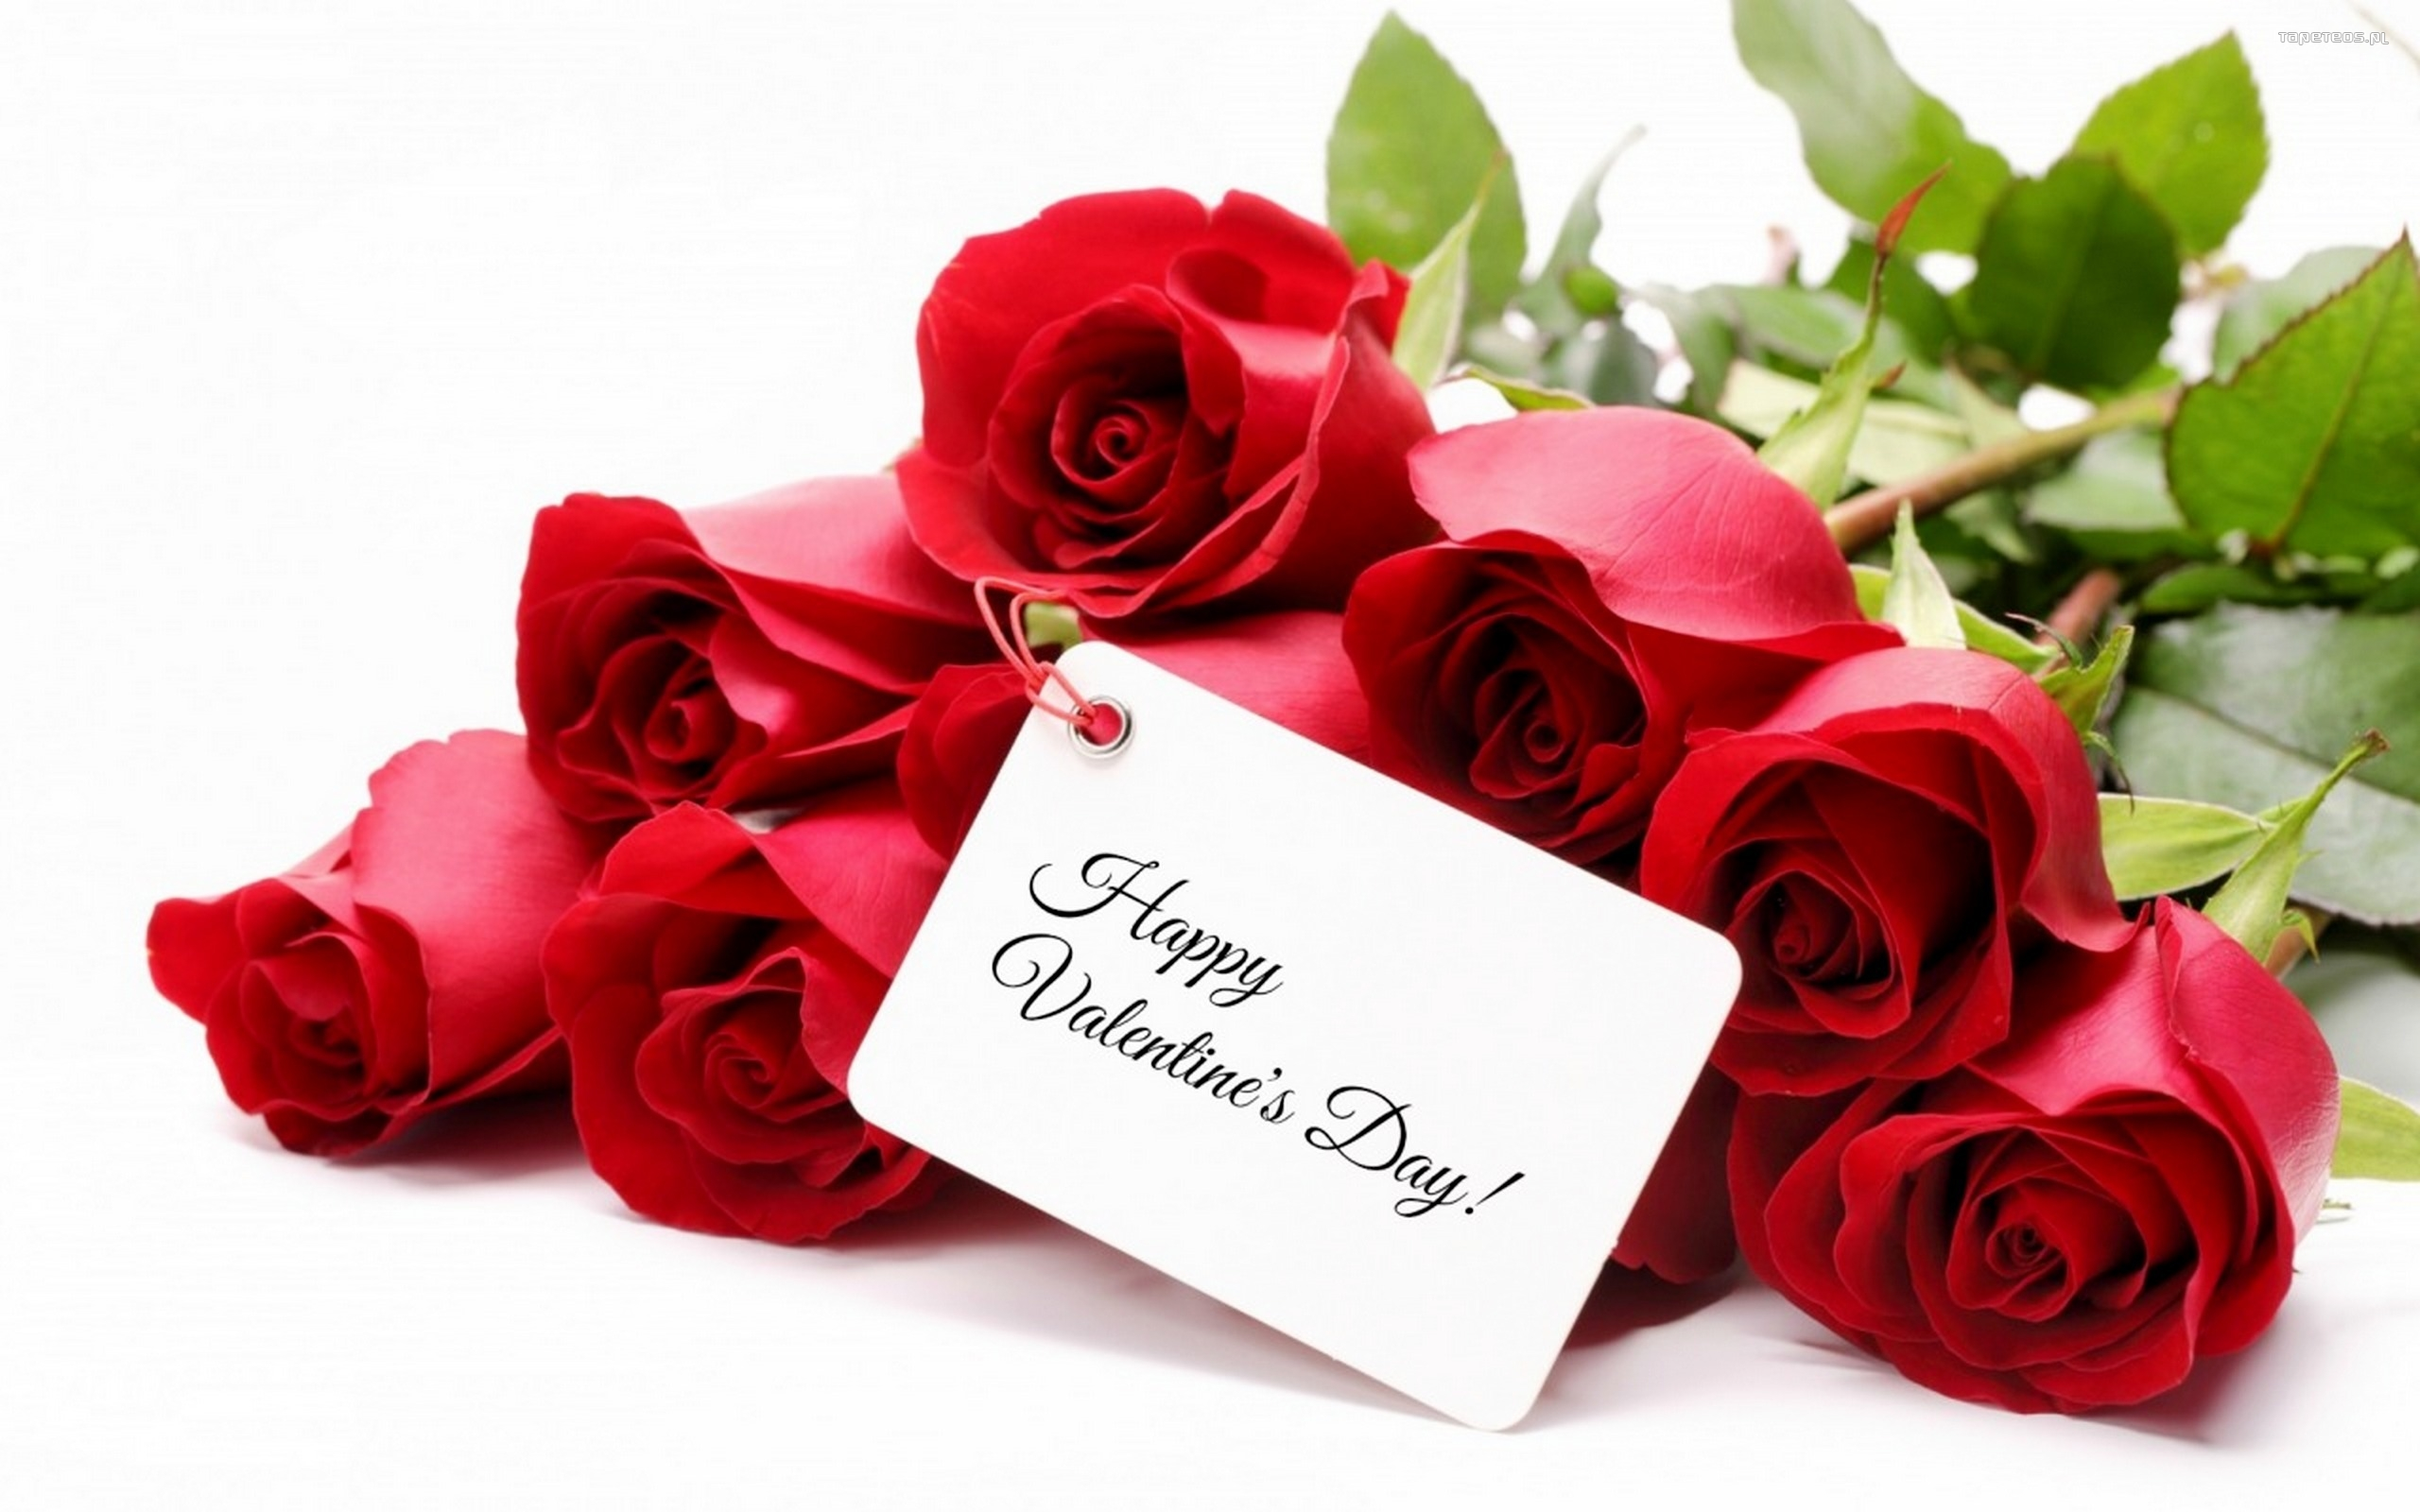 happy valentines day wishes tag love image picture hd wallpaper